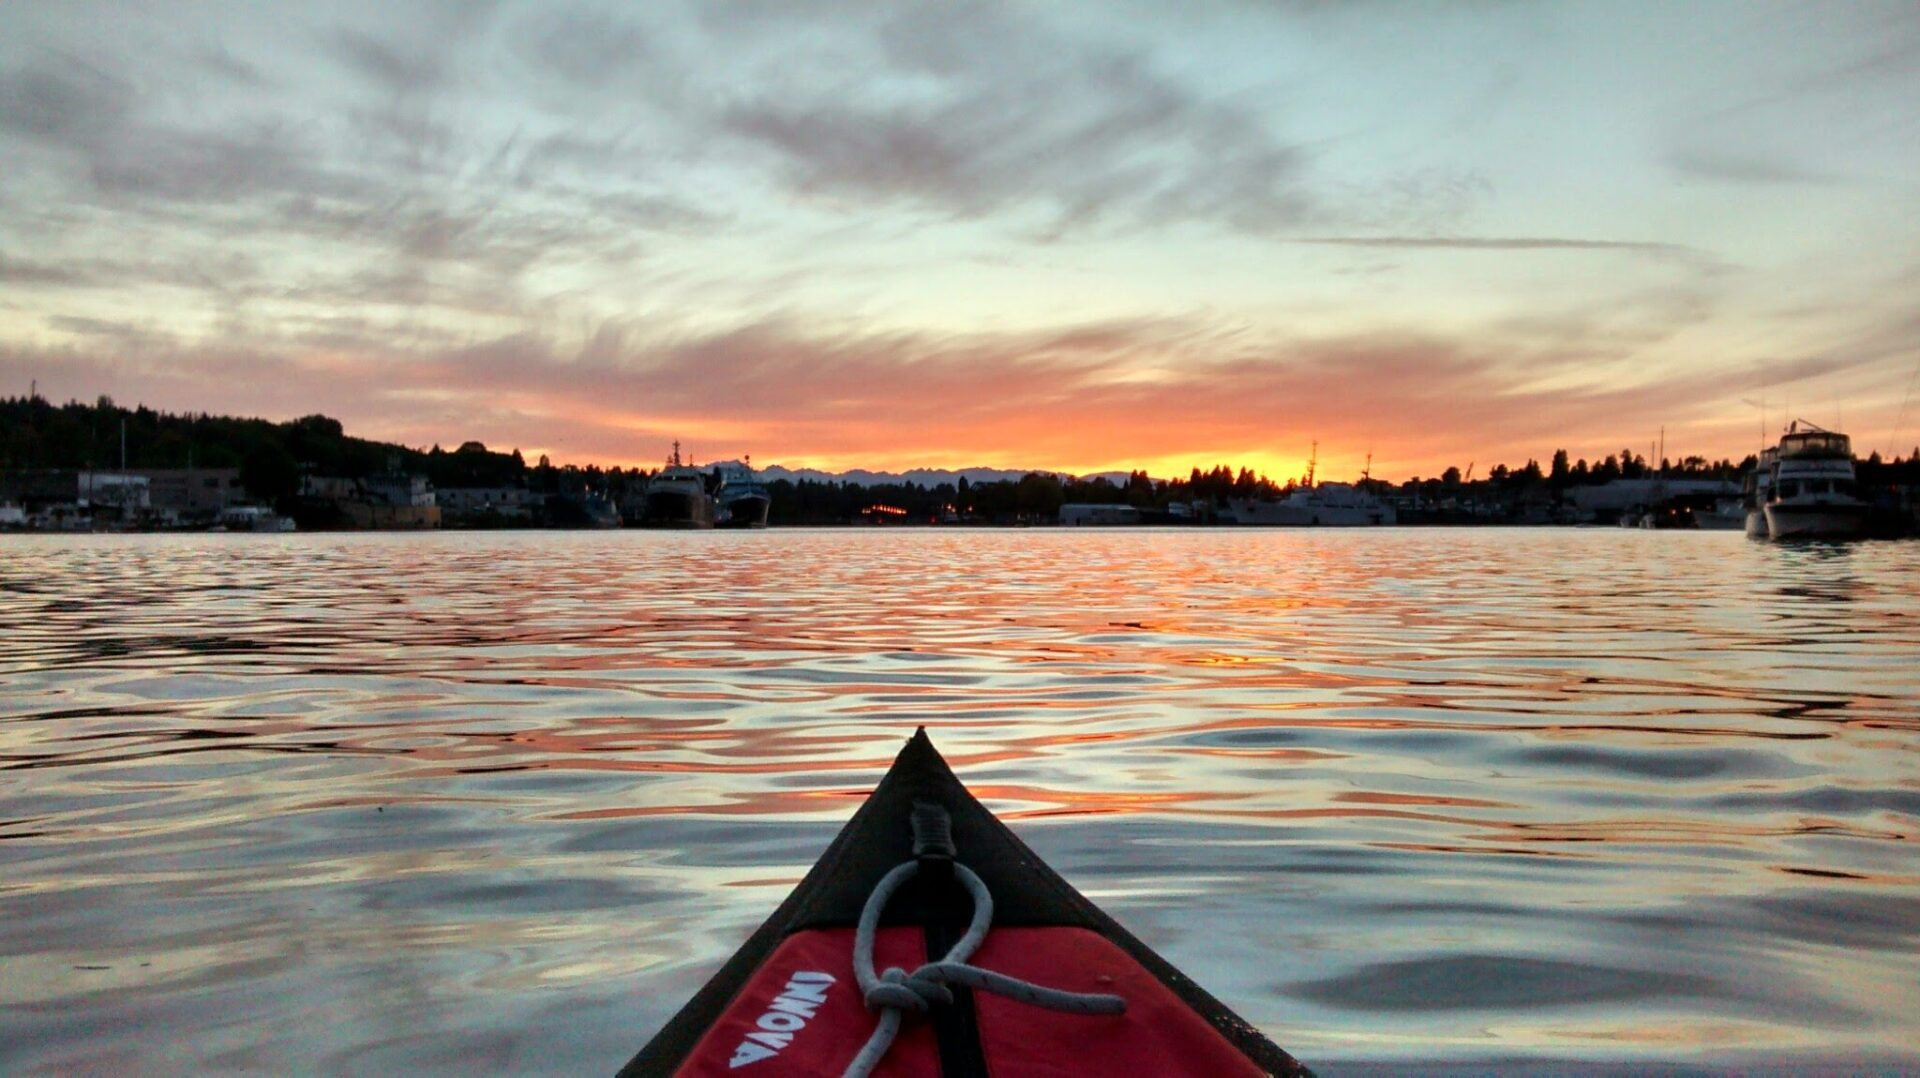 The bow of a kayak in the water just after sunset. There are boats and tree lined hills around the lake